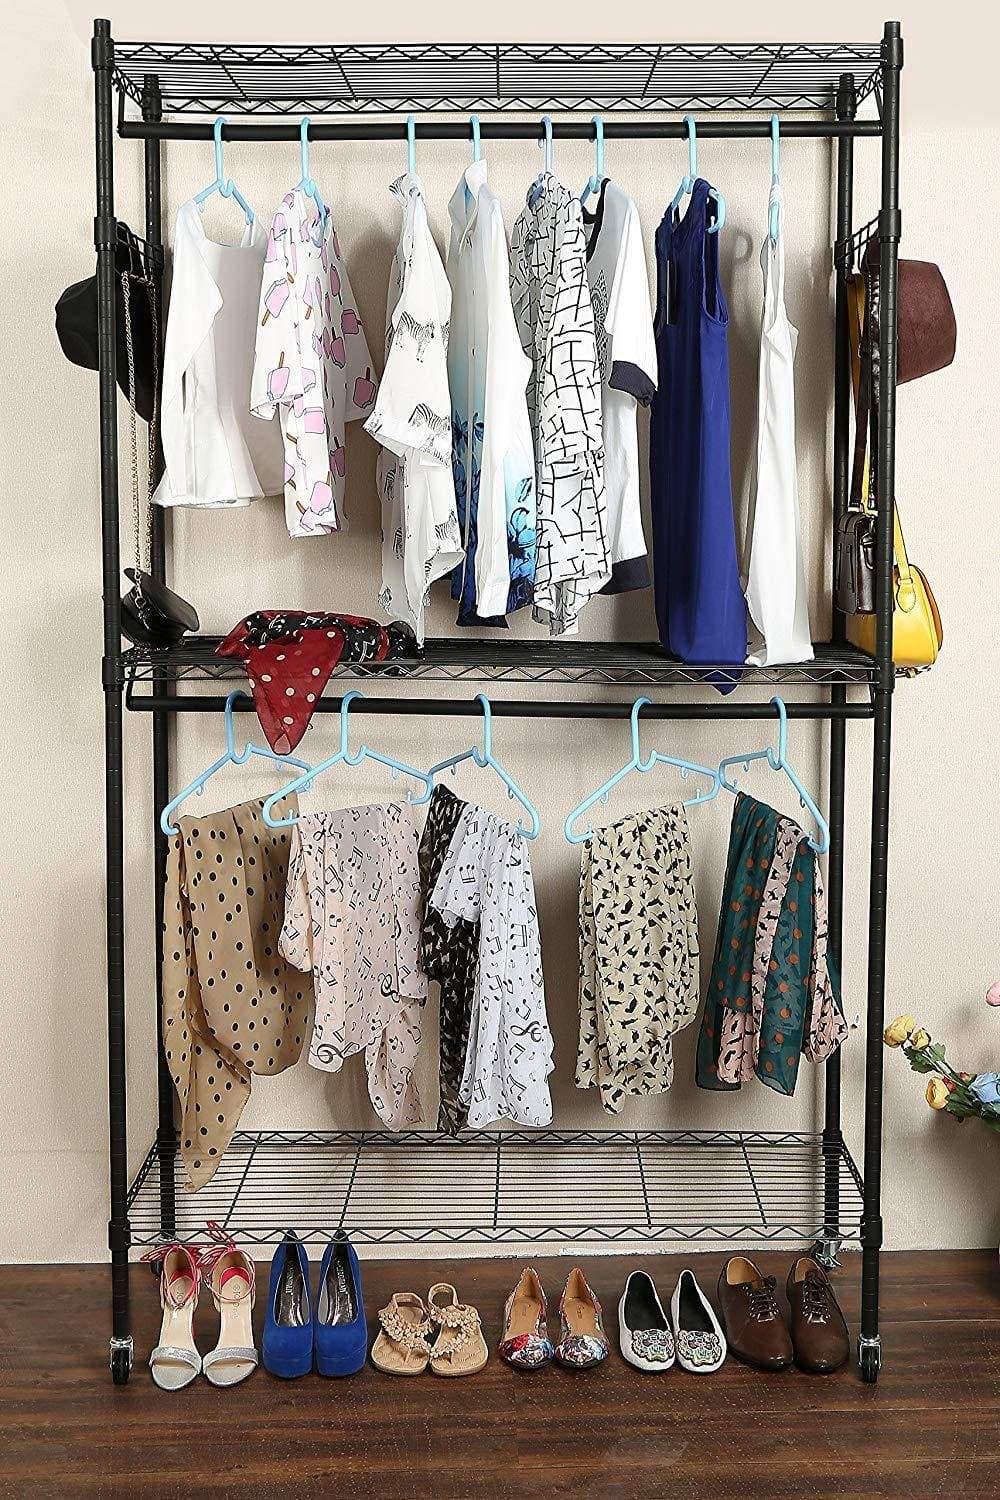 Featured miageek heavy duty garment rack rolling clothes rack free standing shelving wardrobe clothes closet storage organizer with hanging rods and lockable wheels black two pair hook